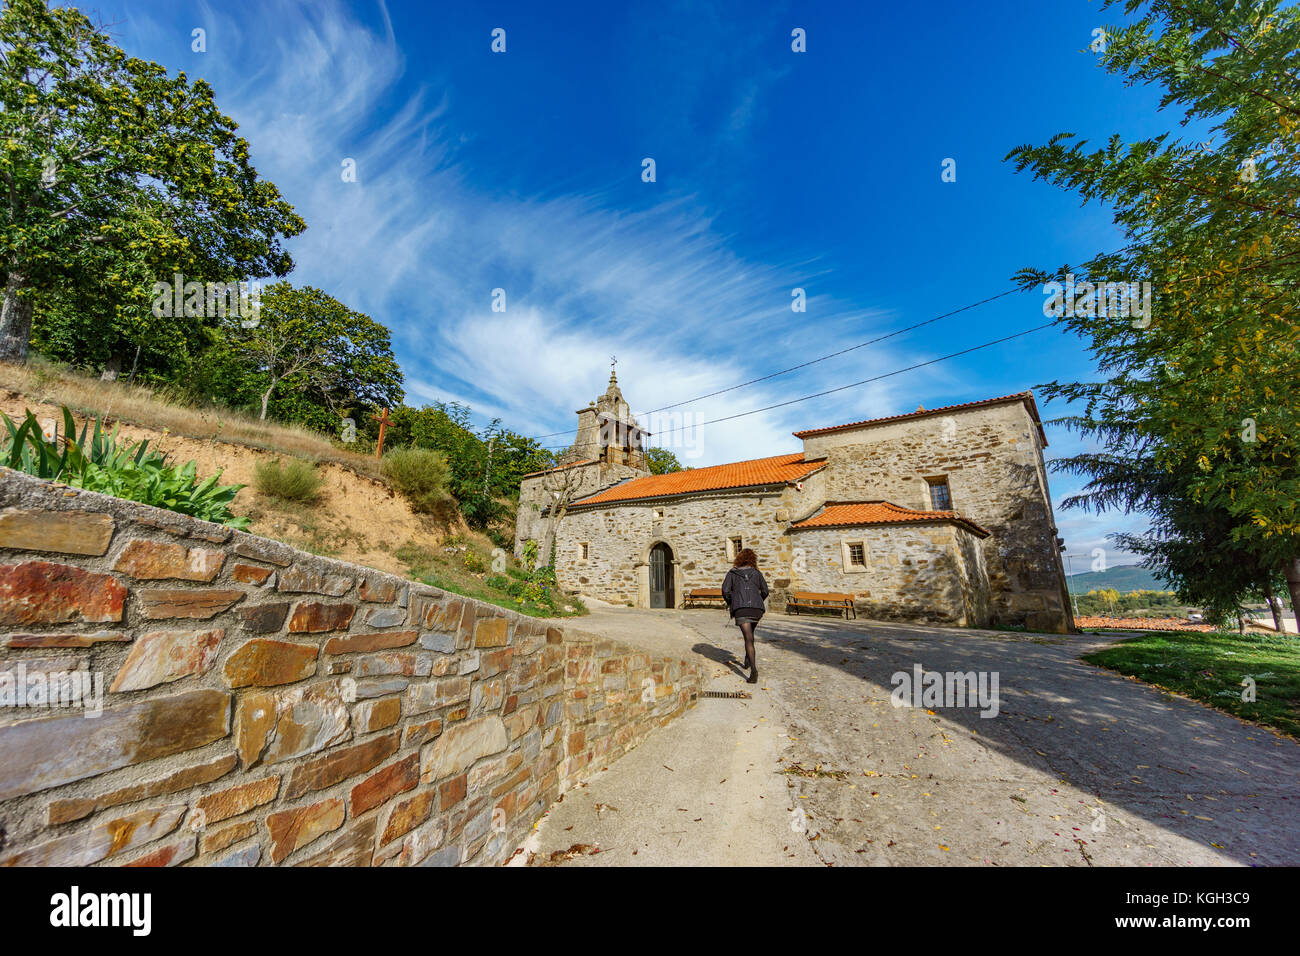 Believer walking towards Pobladura de Aliste church - Stock Image